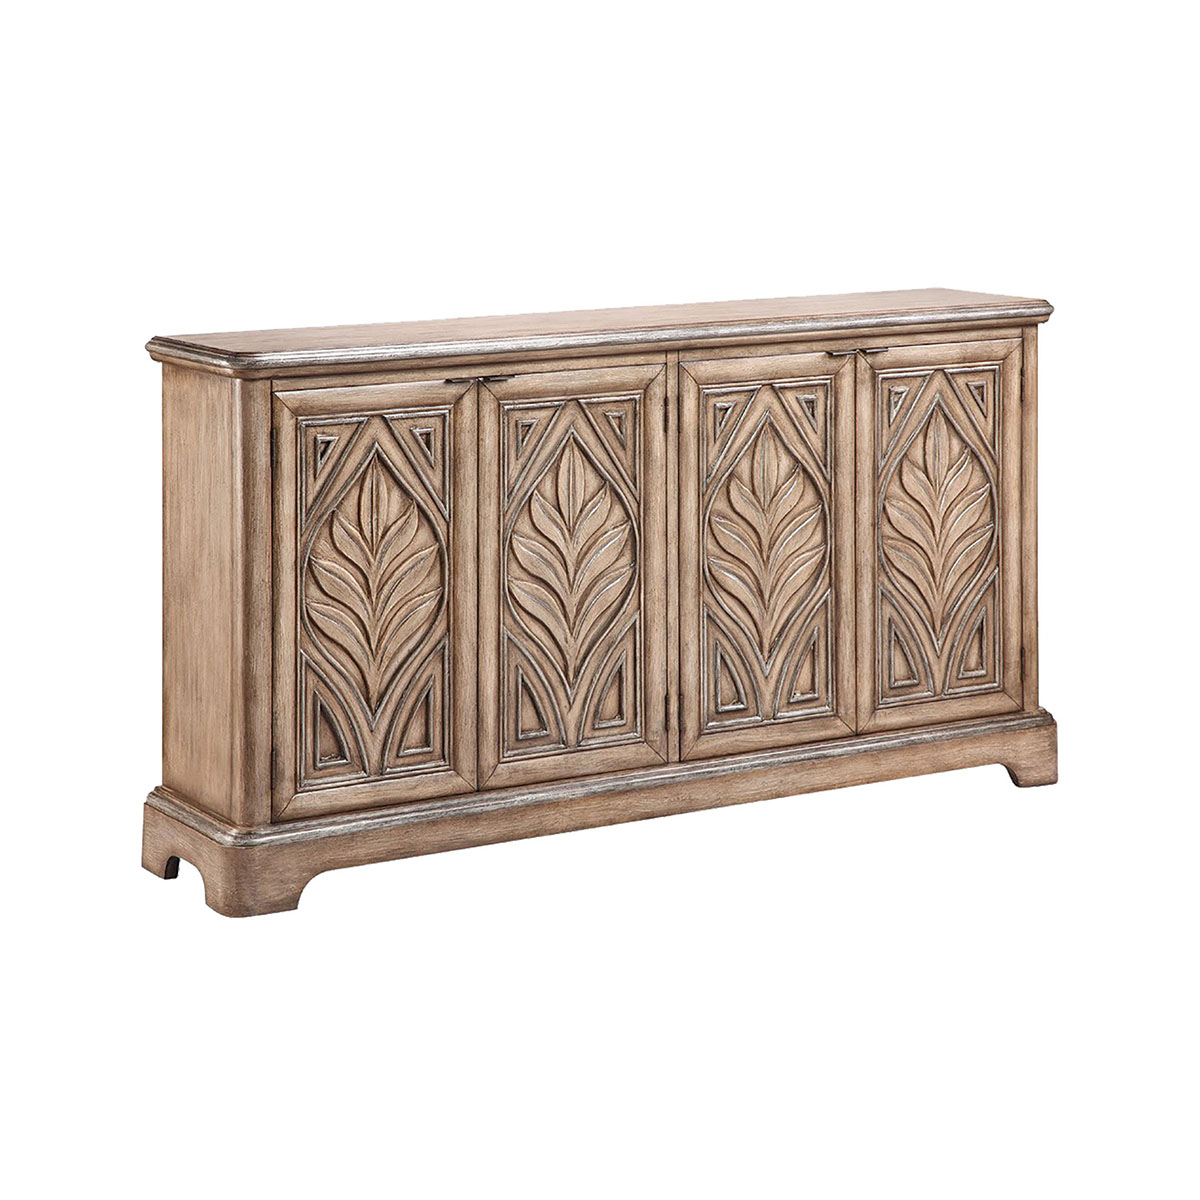 Stein World Reynolda Console Rubbed Antique Wheat